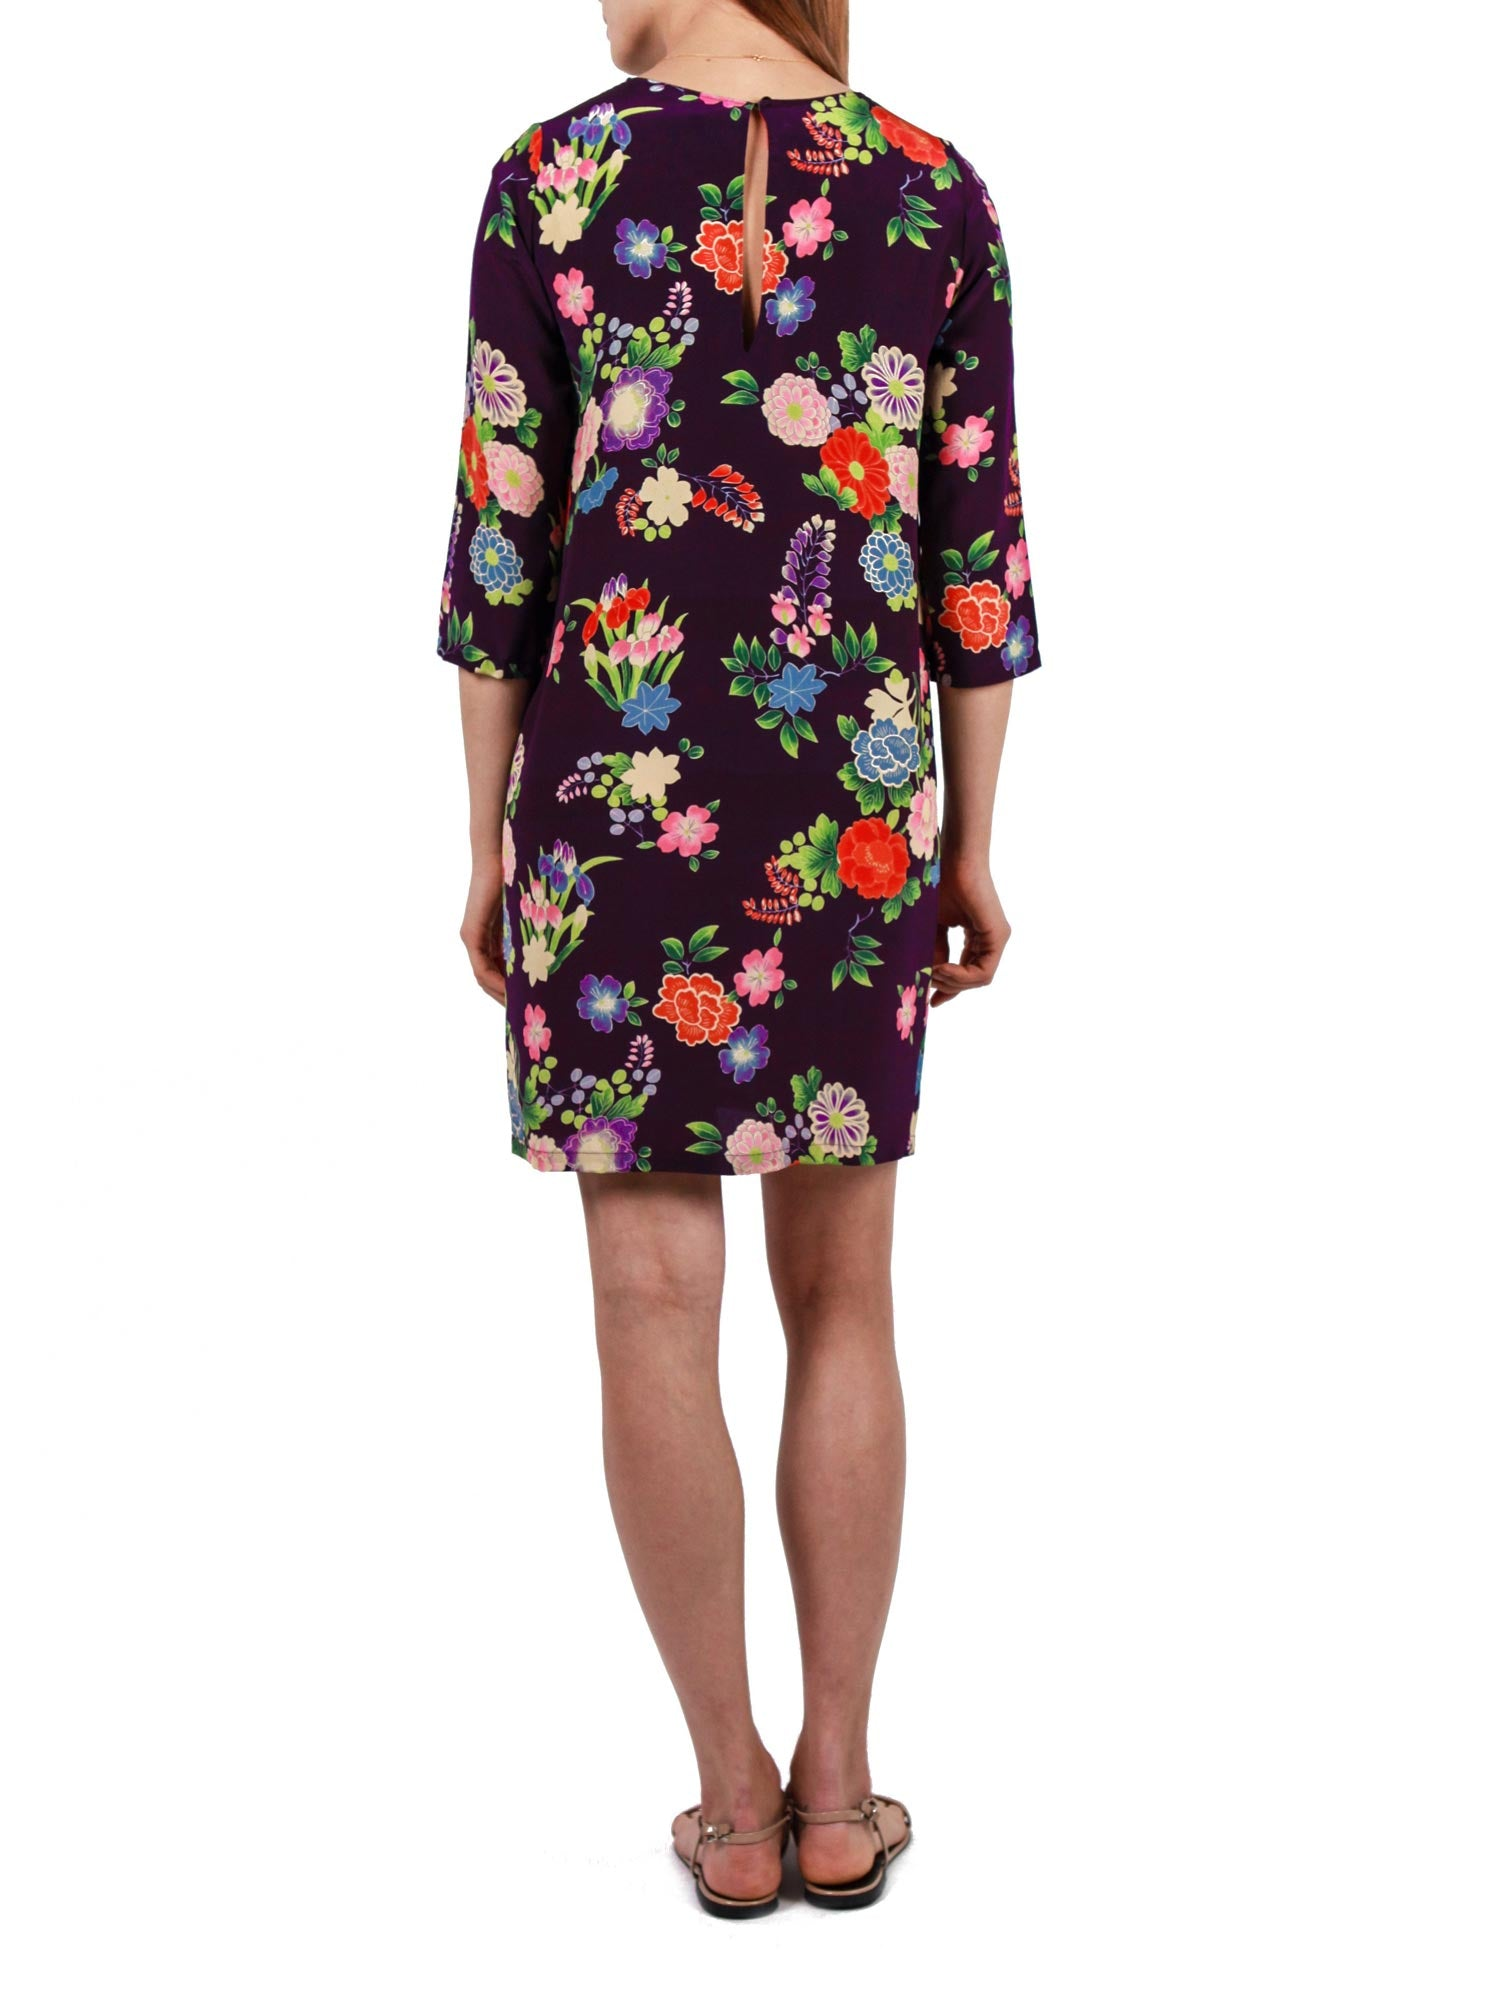 Printed short dress | Silk Crepe de Chine